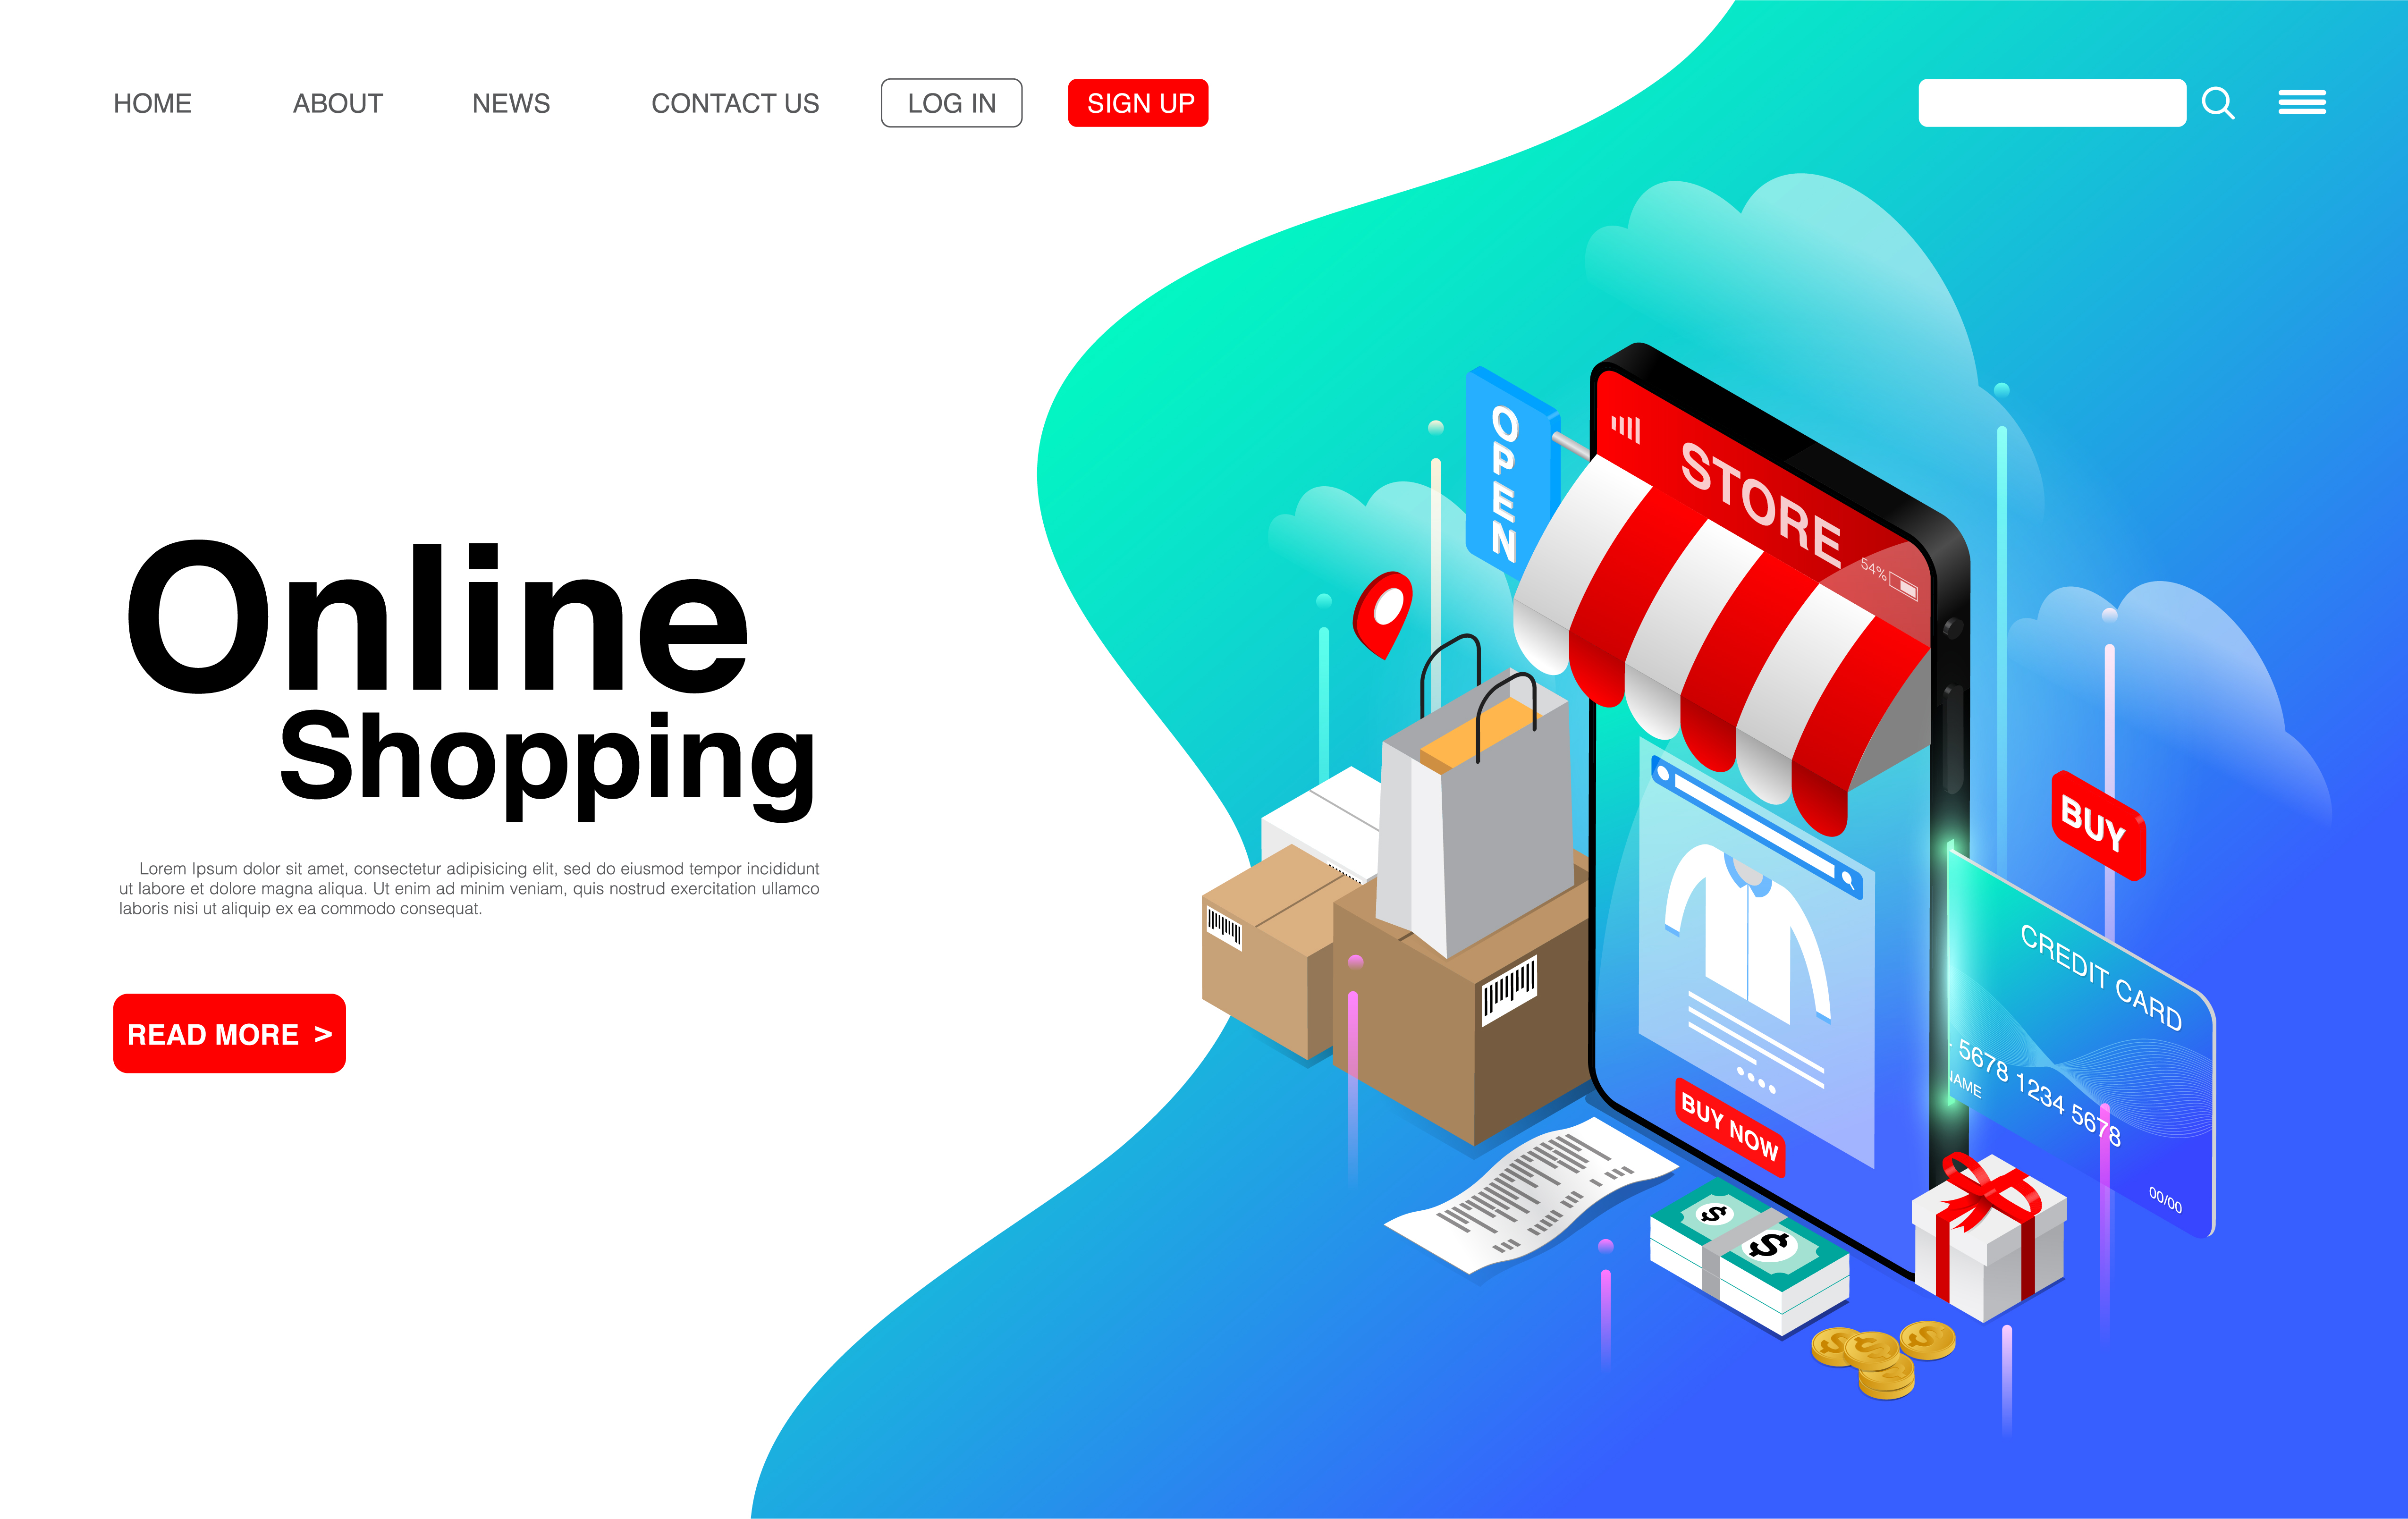 Online Shopping on Mobile Phone Landing Page